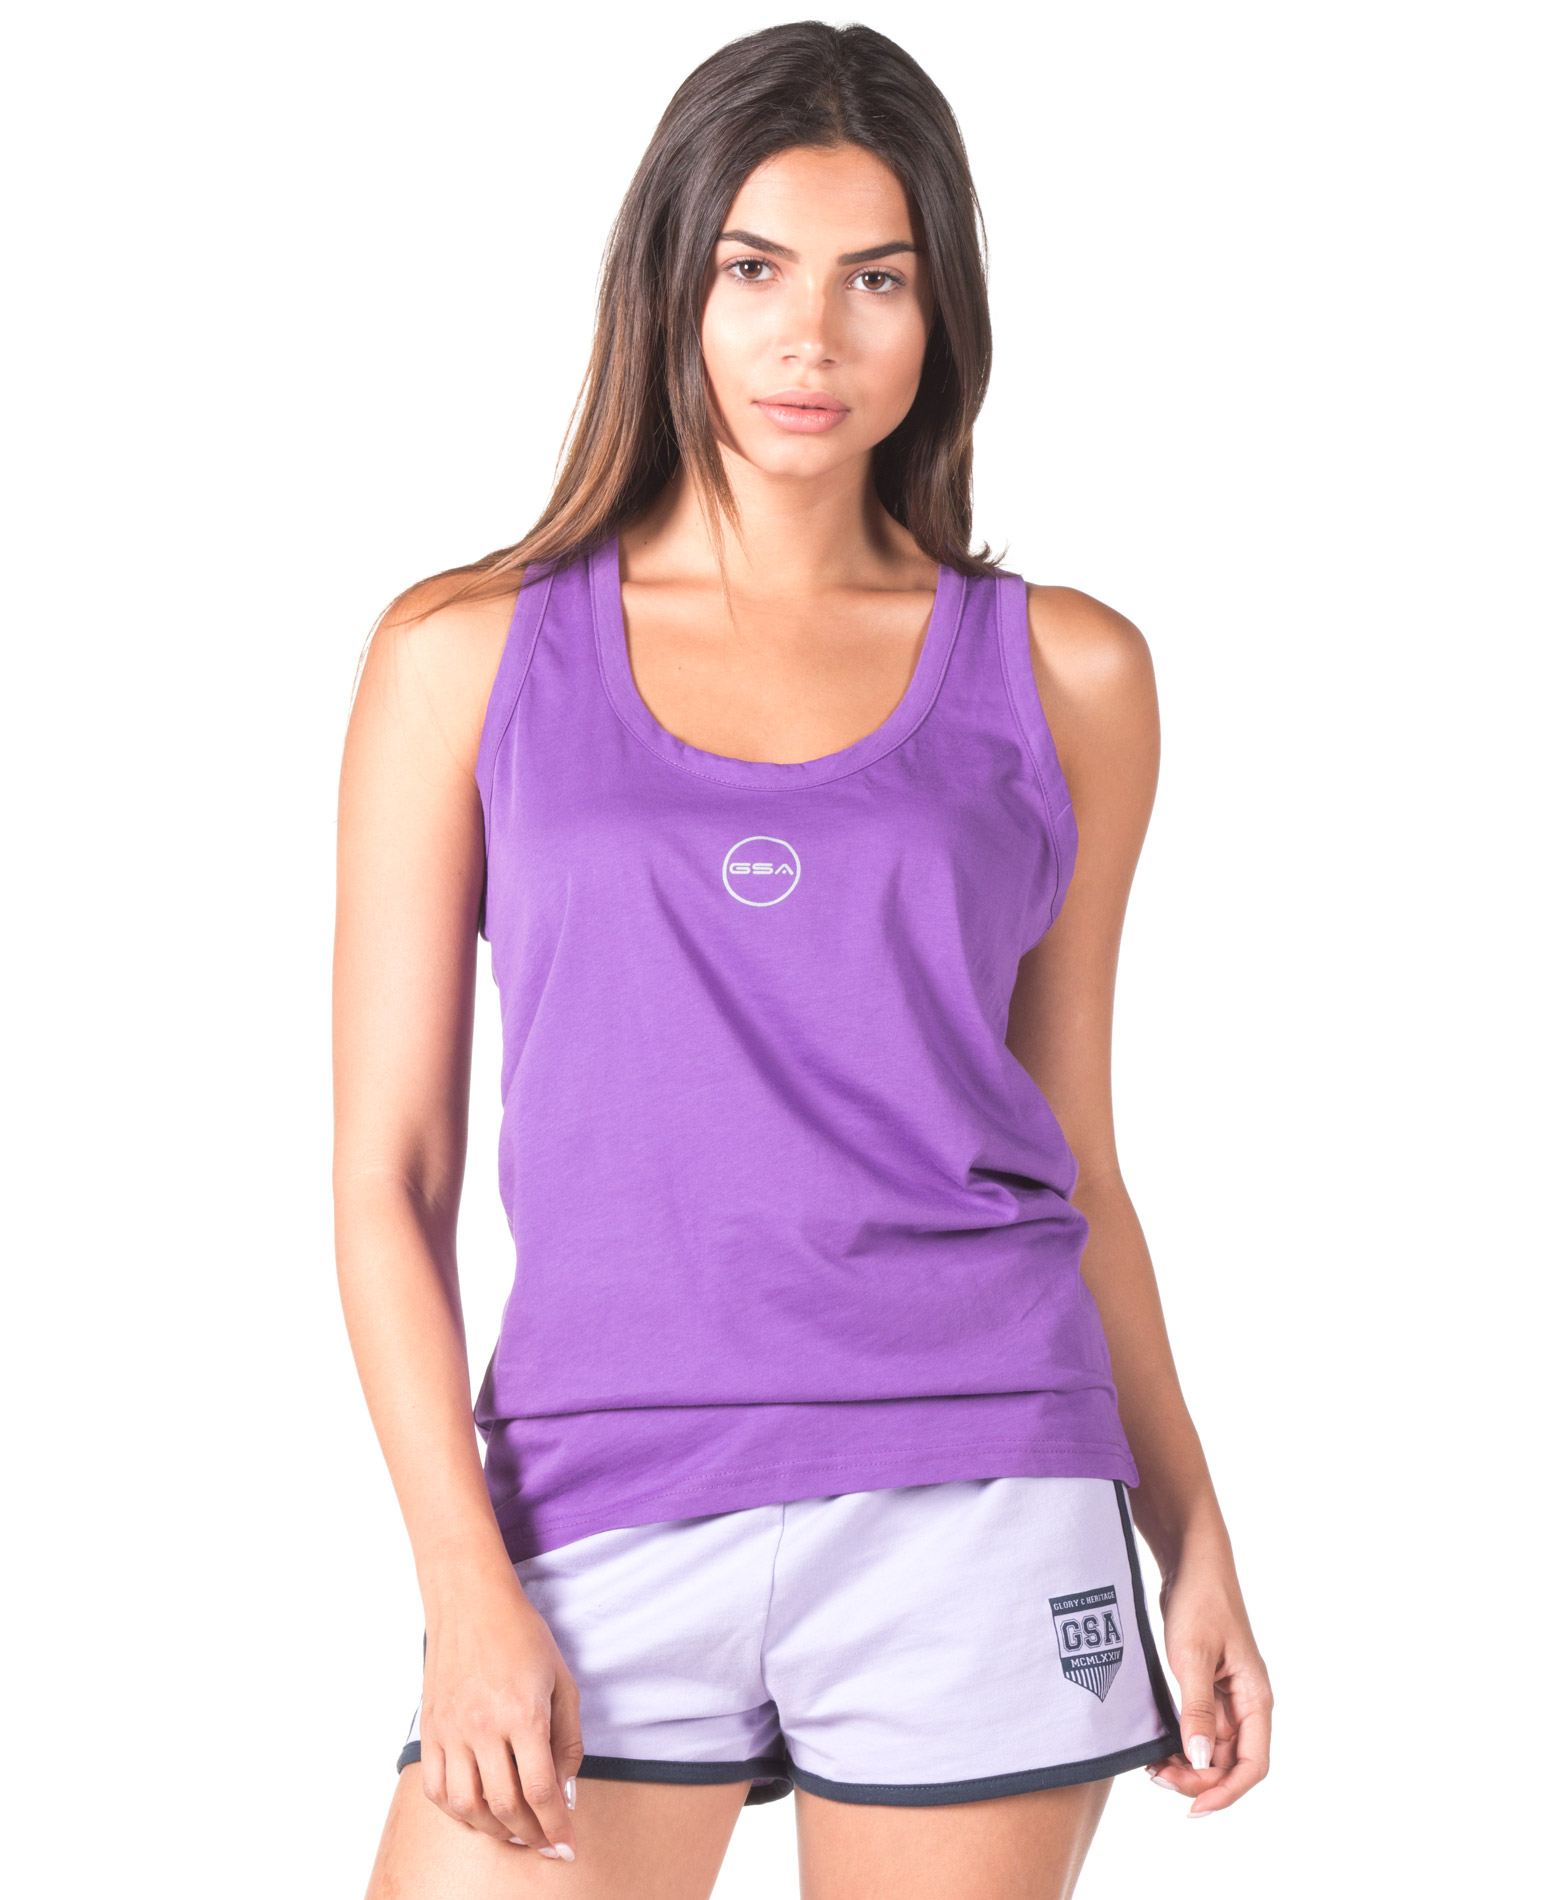 GSA BASIC T-BACK 88-2714-PURPLE Μωβ